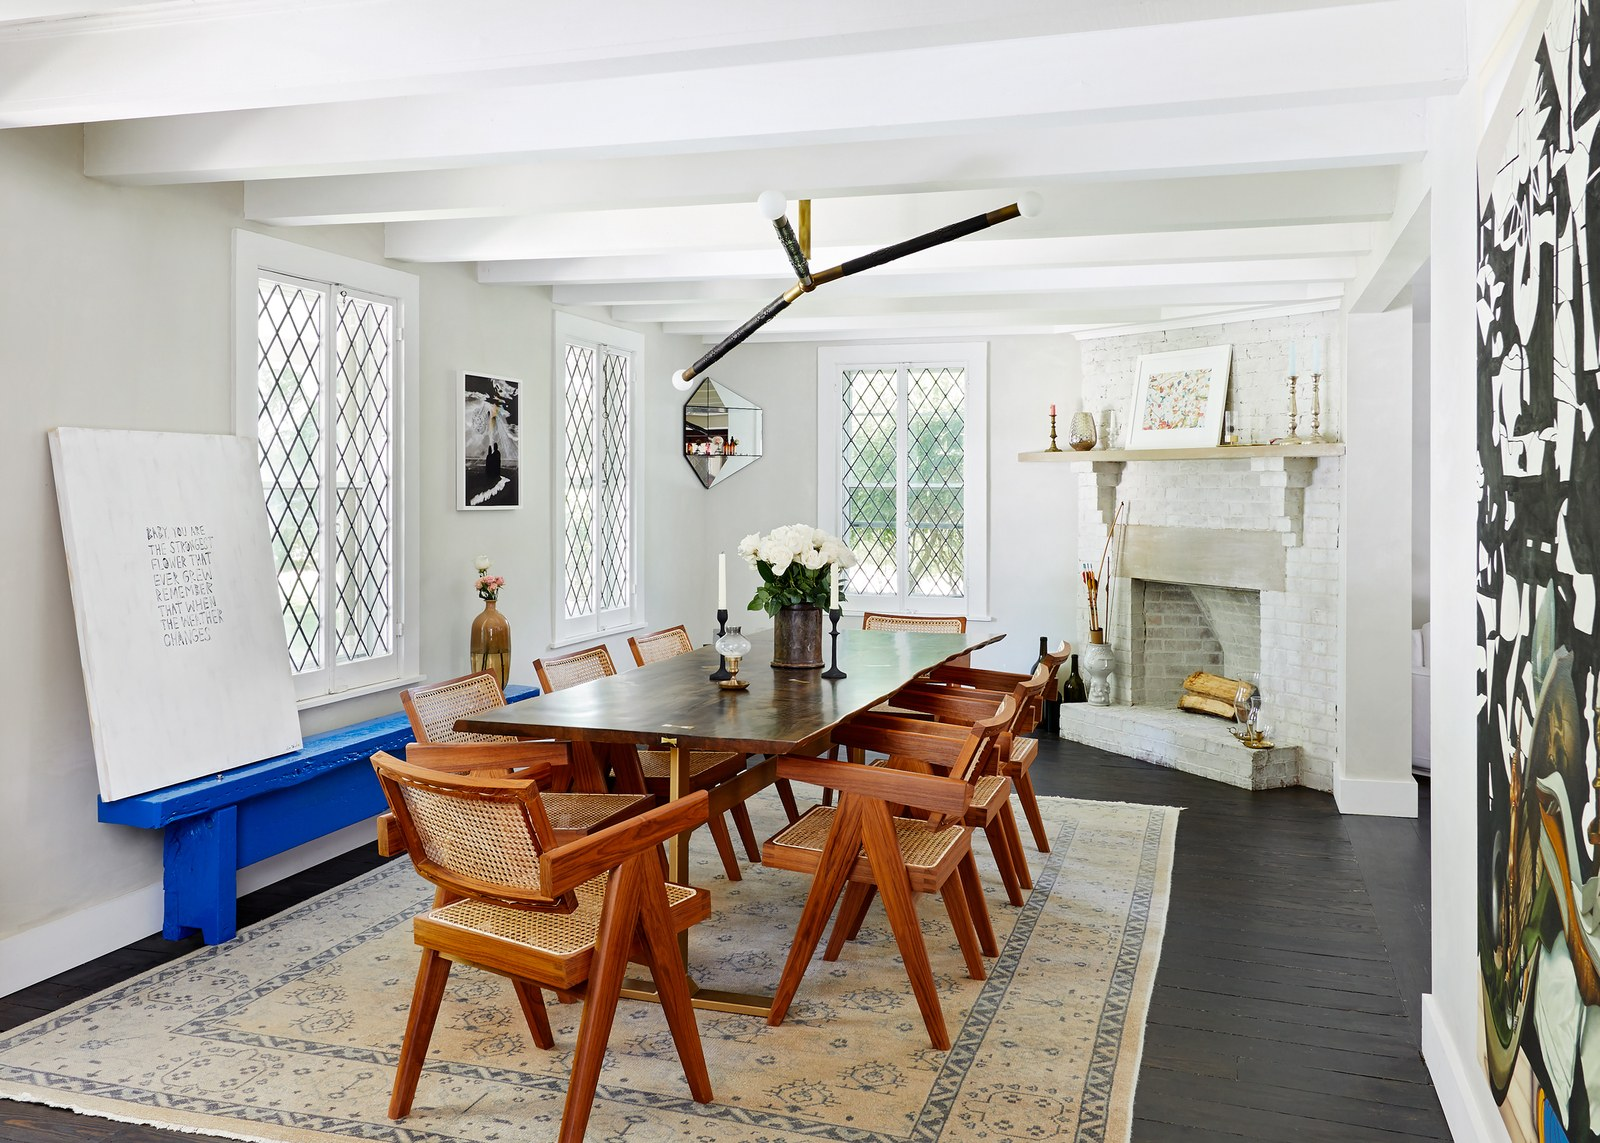 Samuel Amoia Southampton Home Interior design renovation for 1800s-era Tudor home